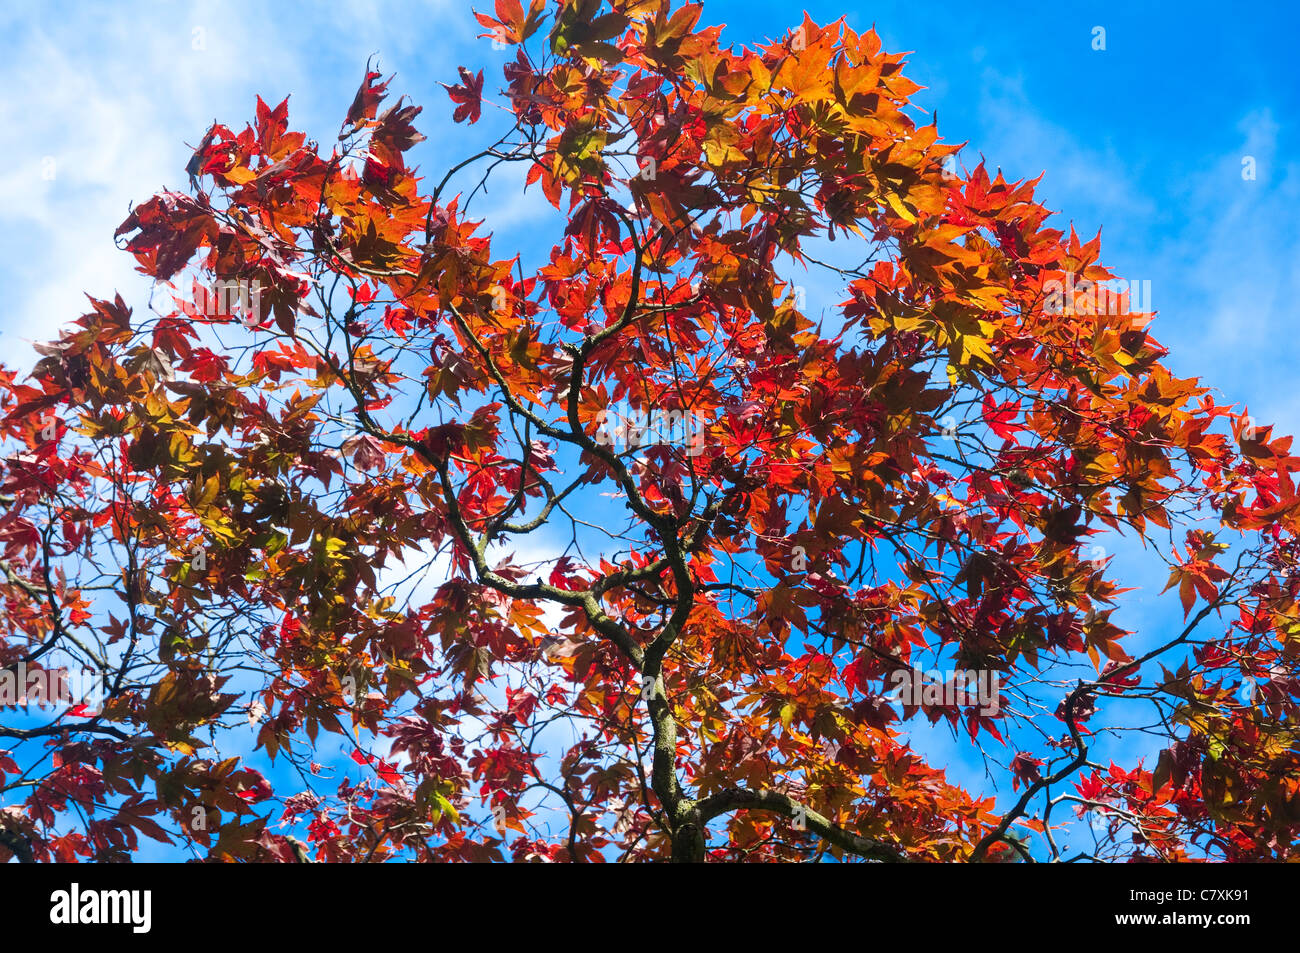 Autumn colour - orange and red  leaves of a Japanese Maple tree against a blue sky. UK. - Stock Image